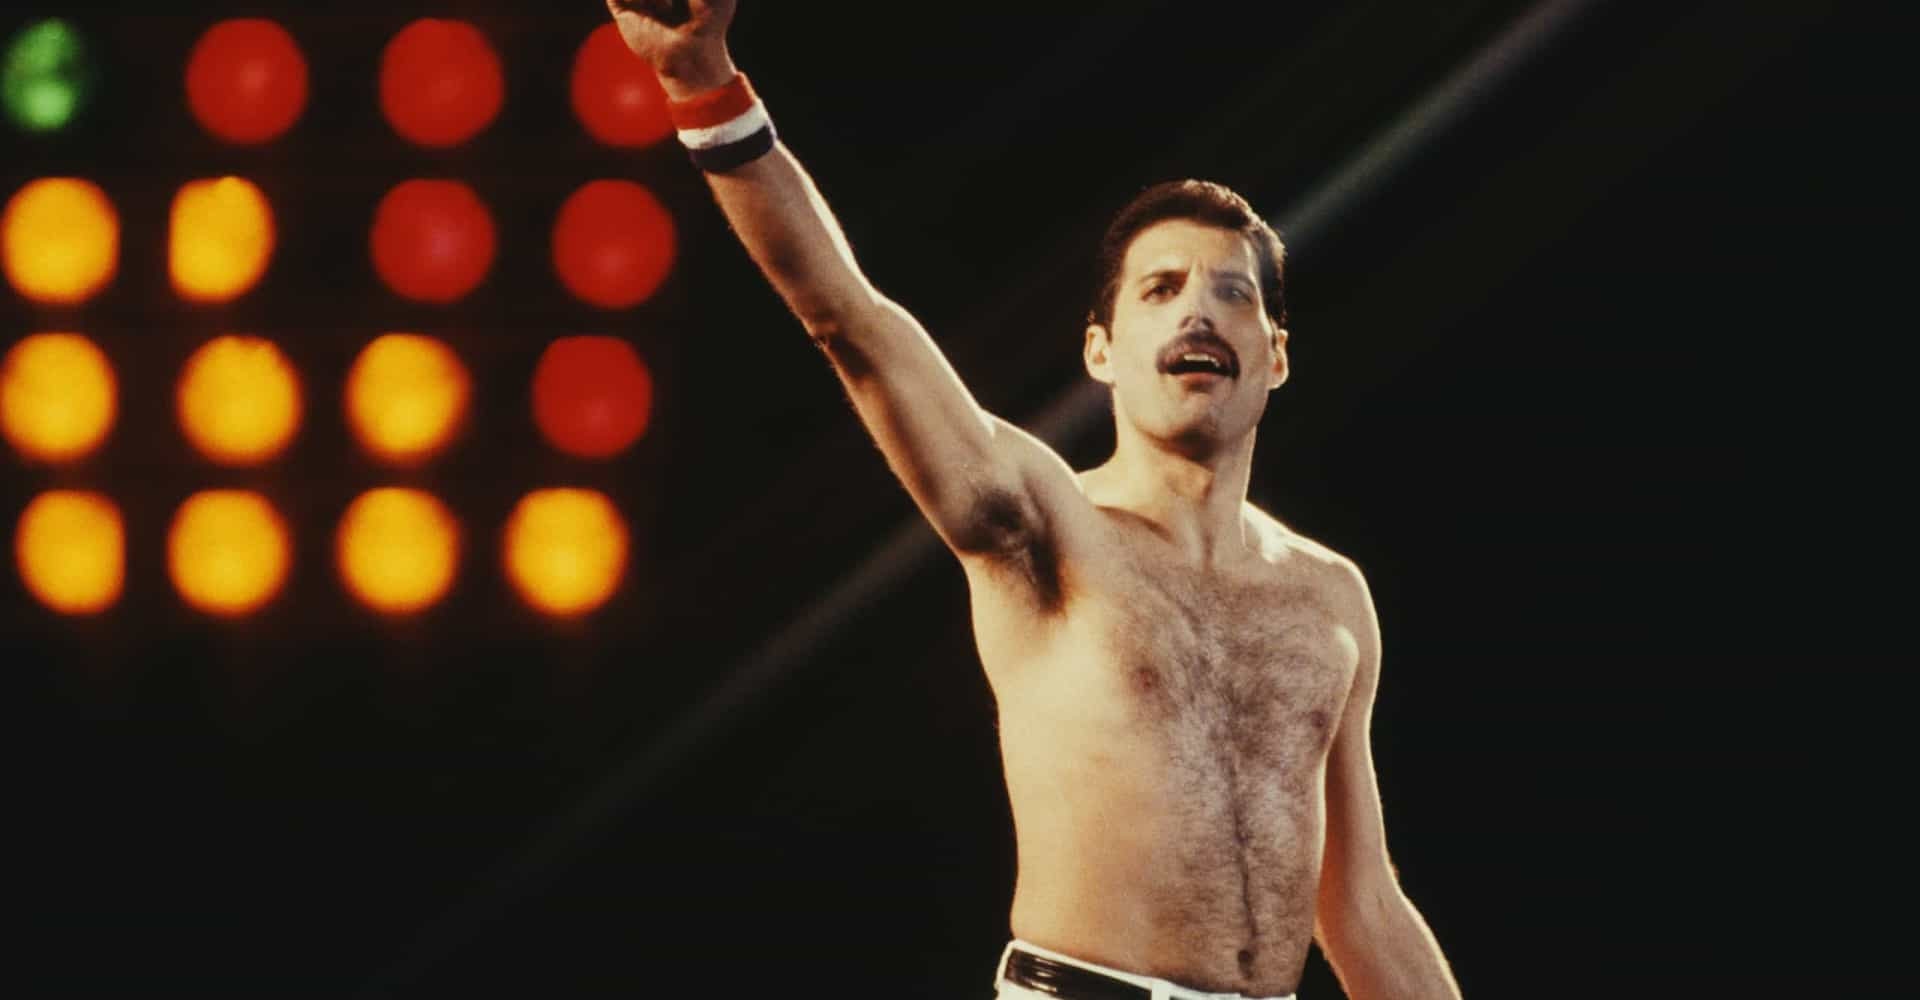 The king of Queen: How Freddie Mercury became somebody we all love